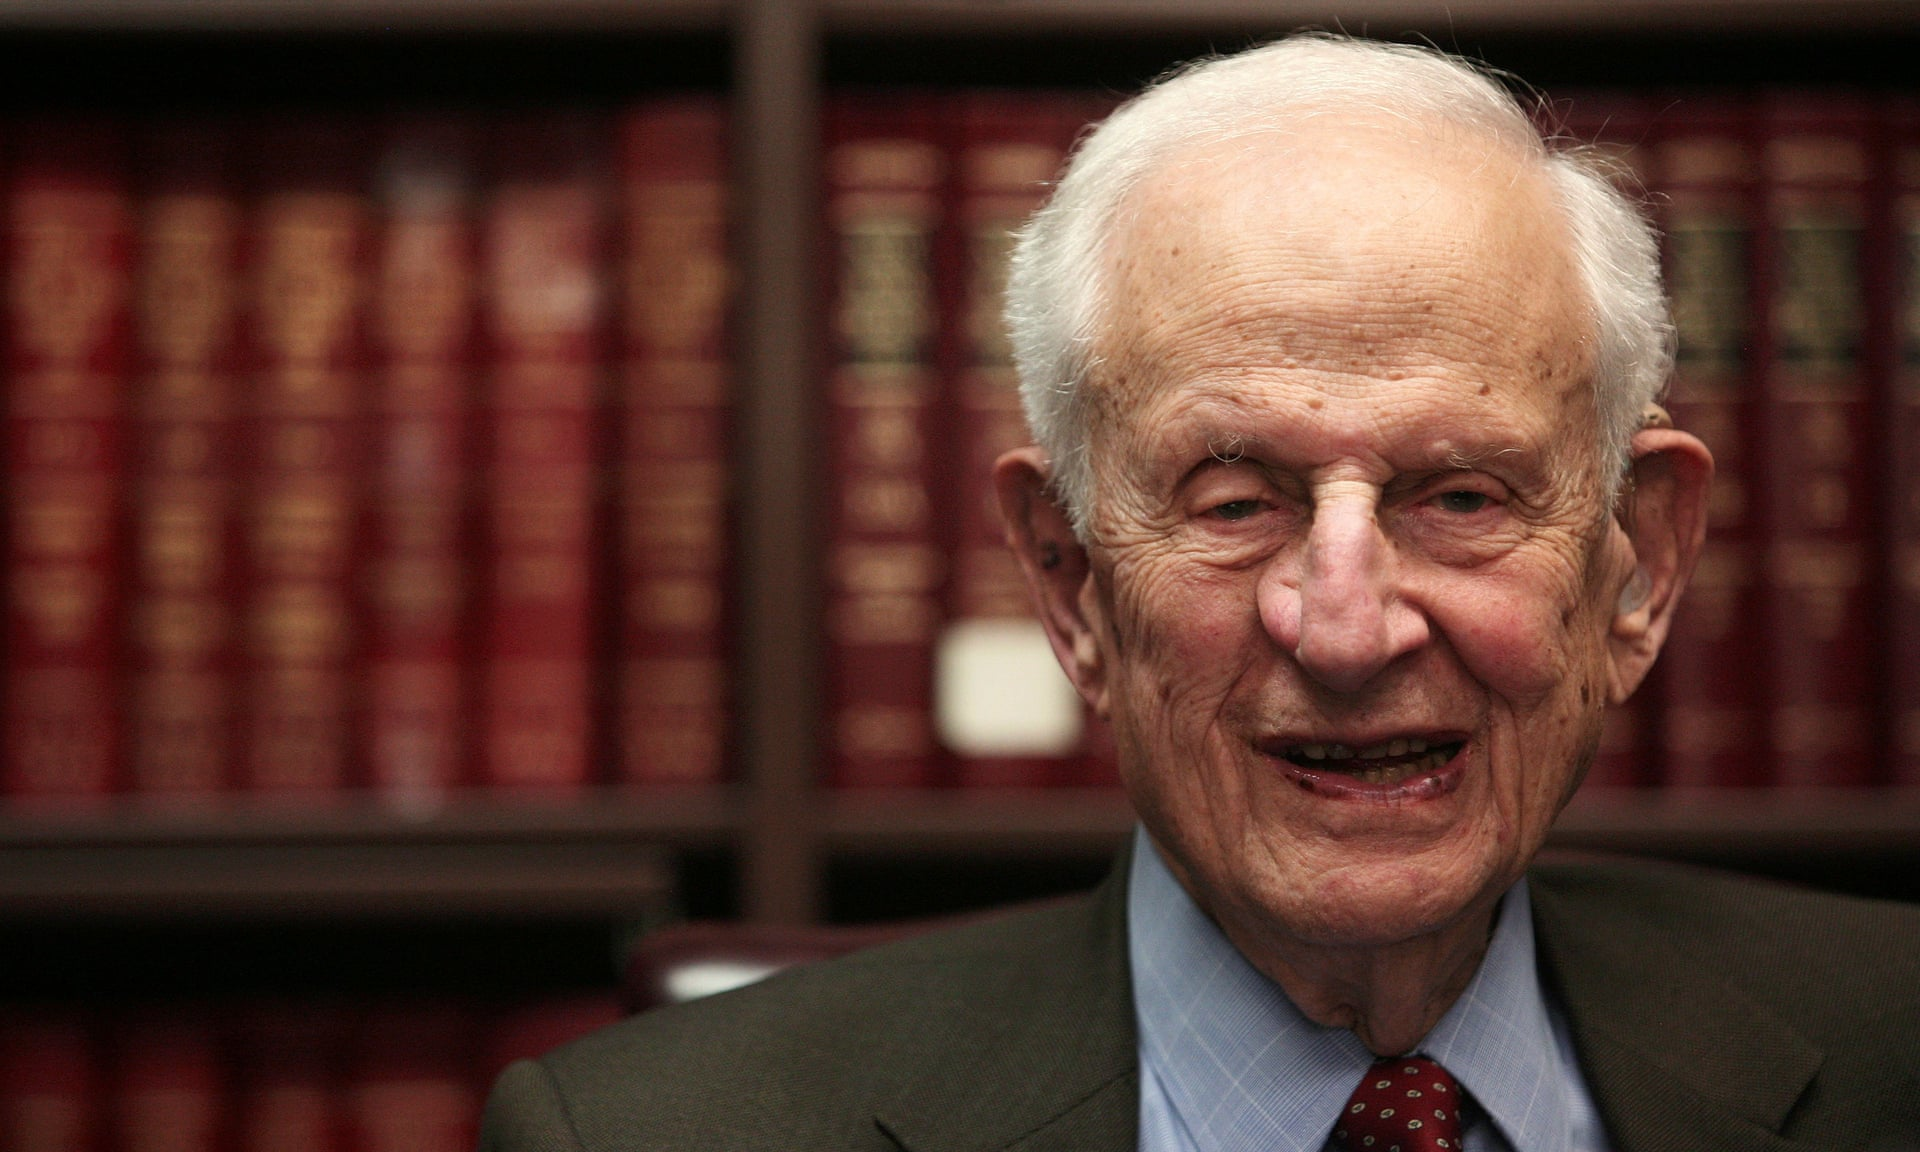 Robert Morgenthau dies at 99